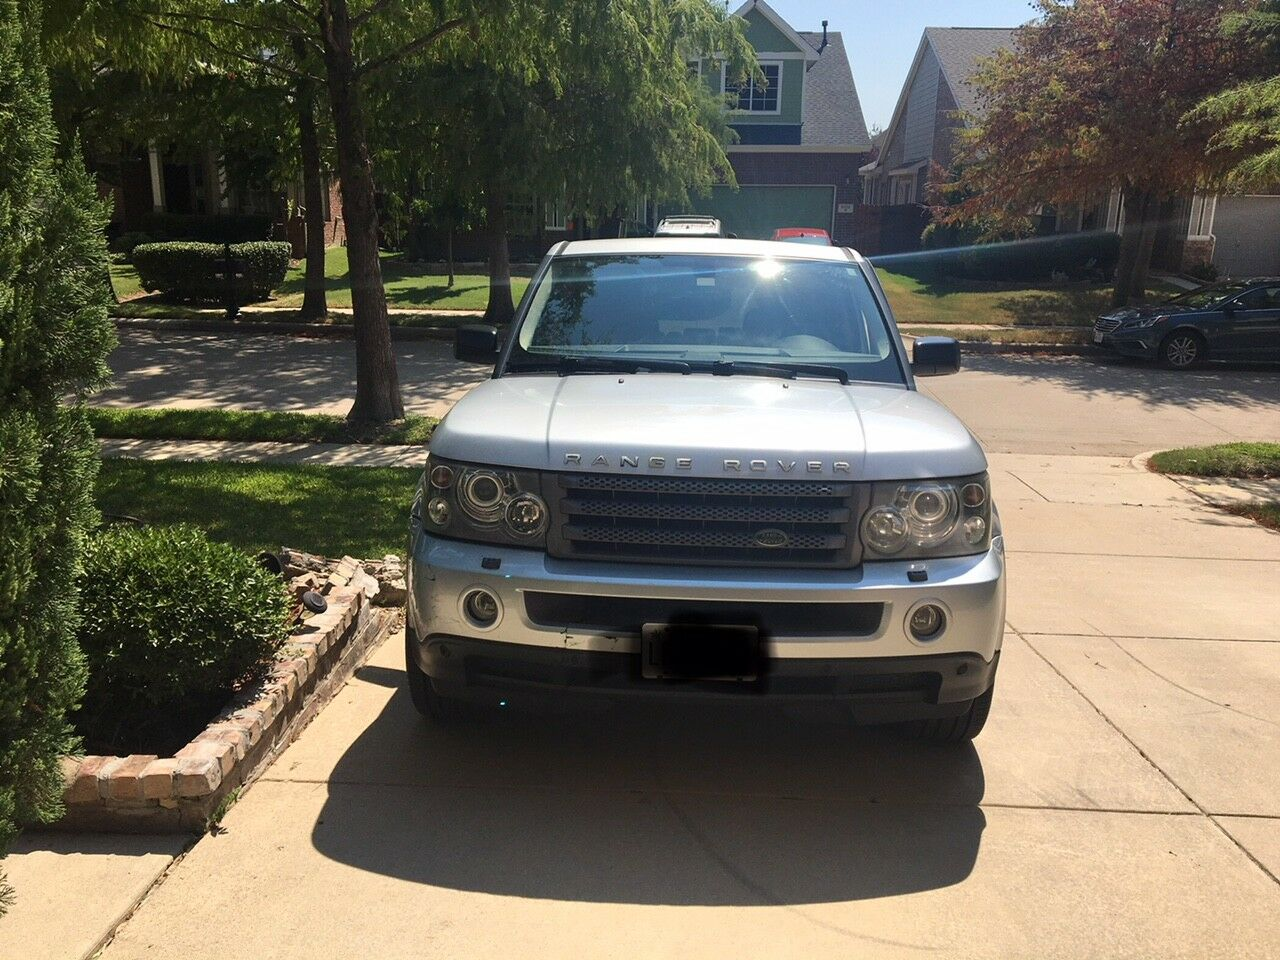 2007 Land Rover Range Rover Sport  2007 Land Rover Range Rover HSE Sports mint condition